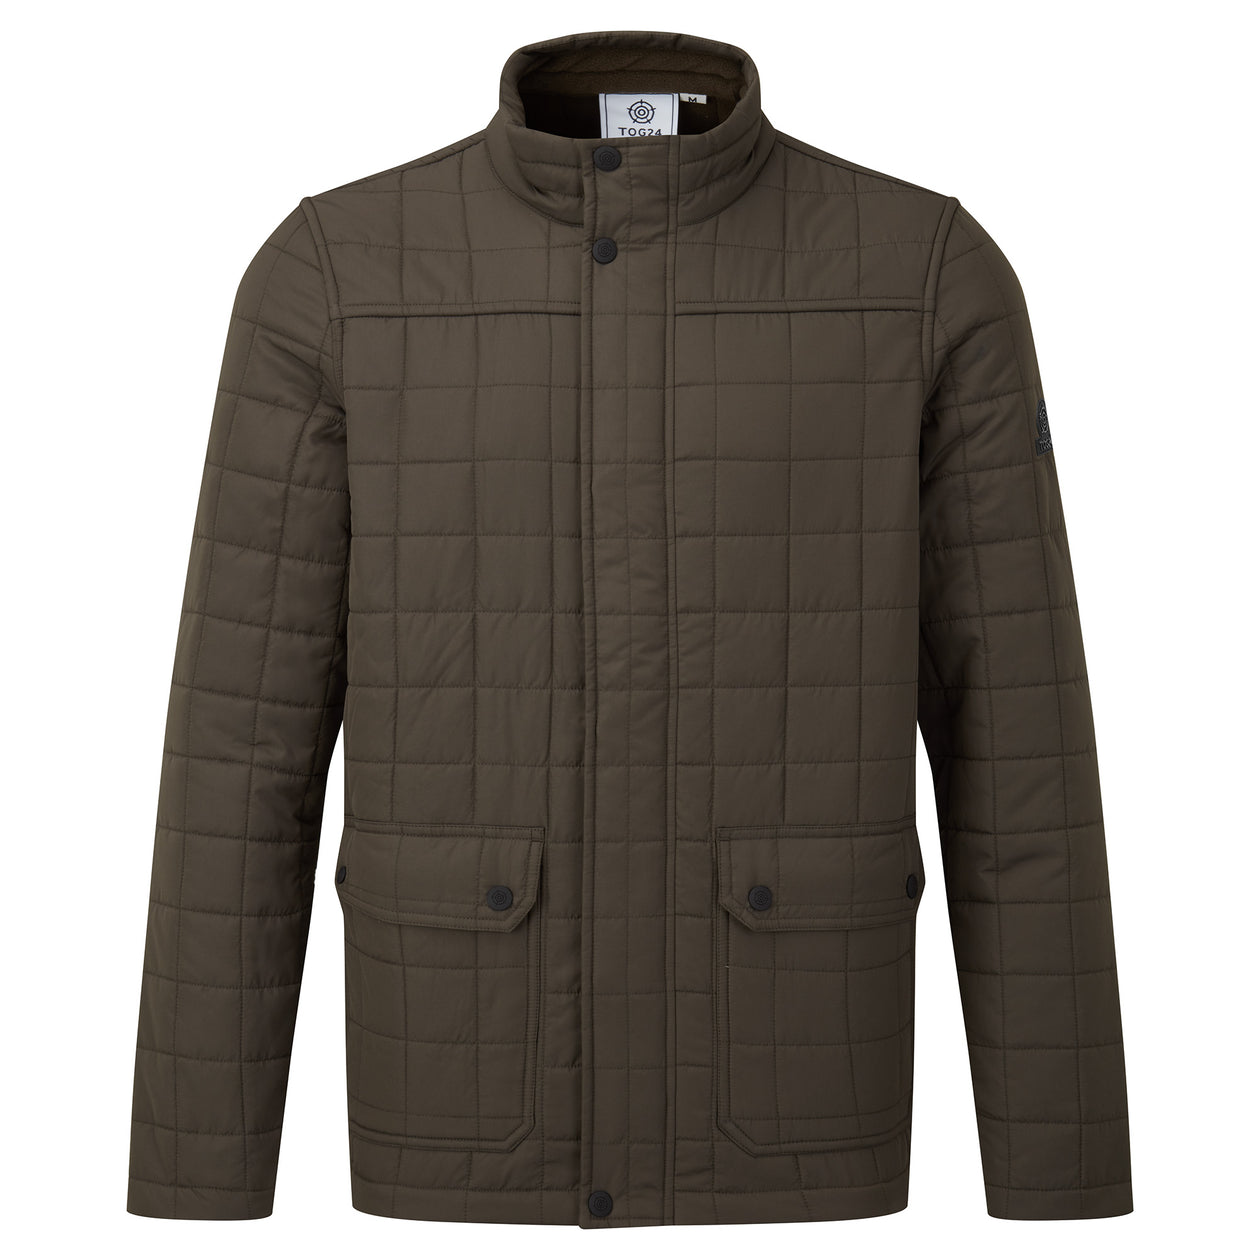 Harman Mens Jacket - Dark Khaki image 4